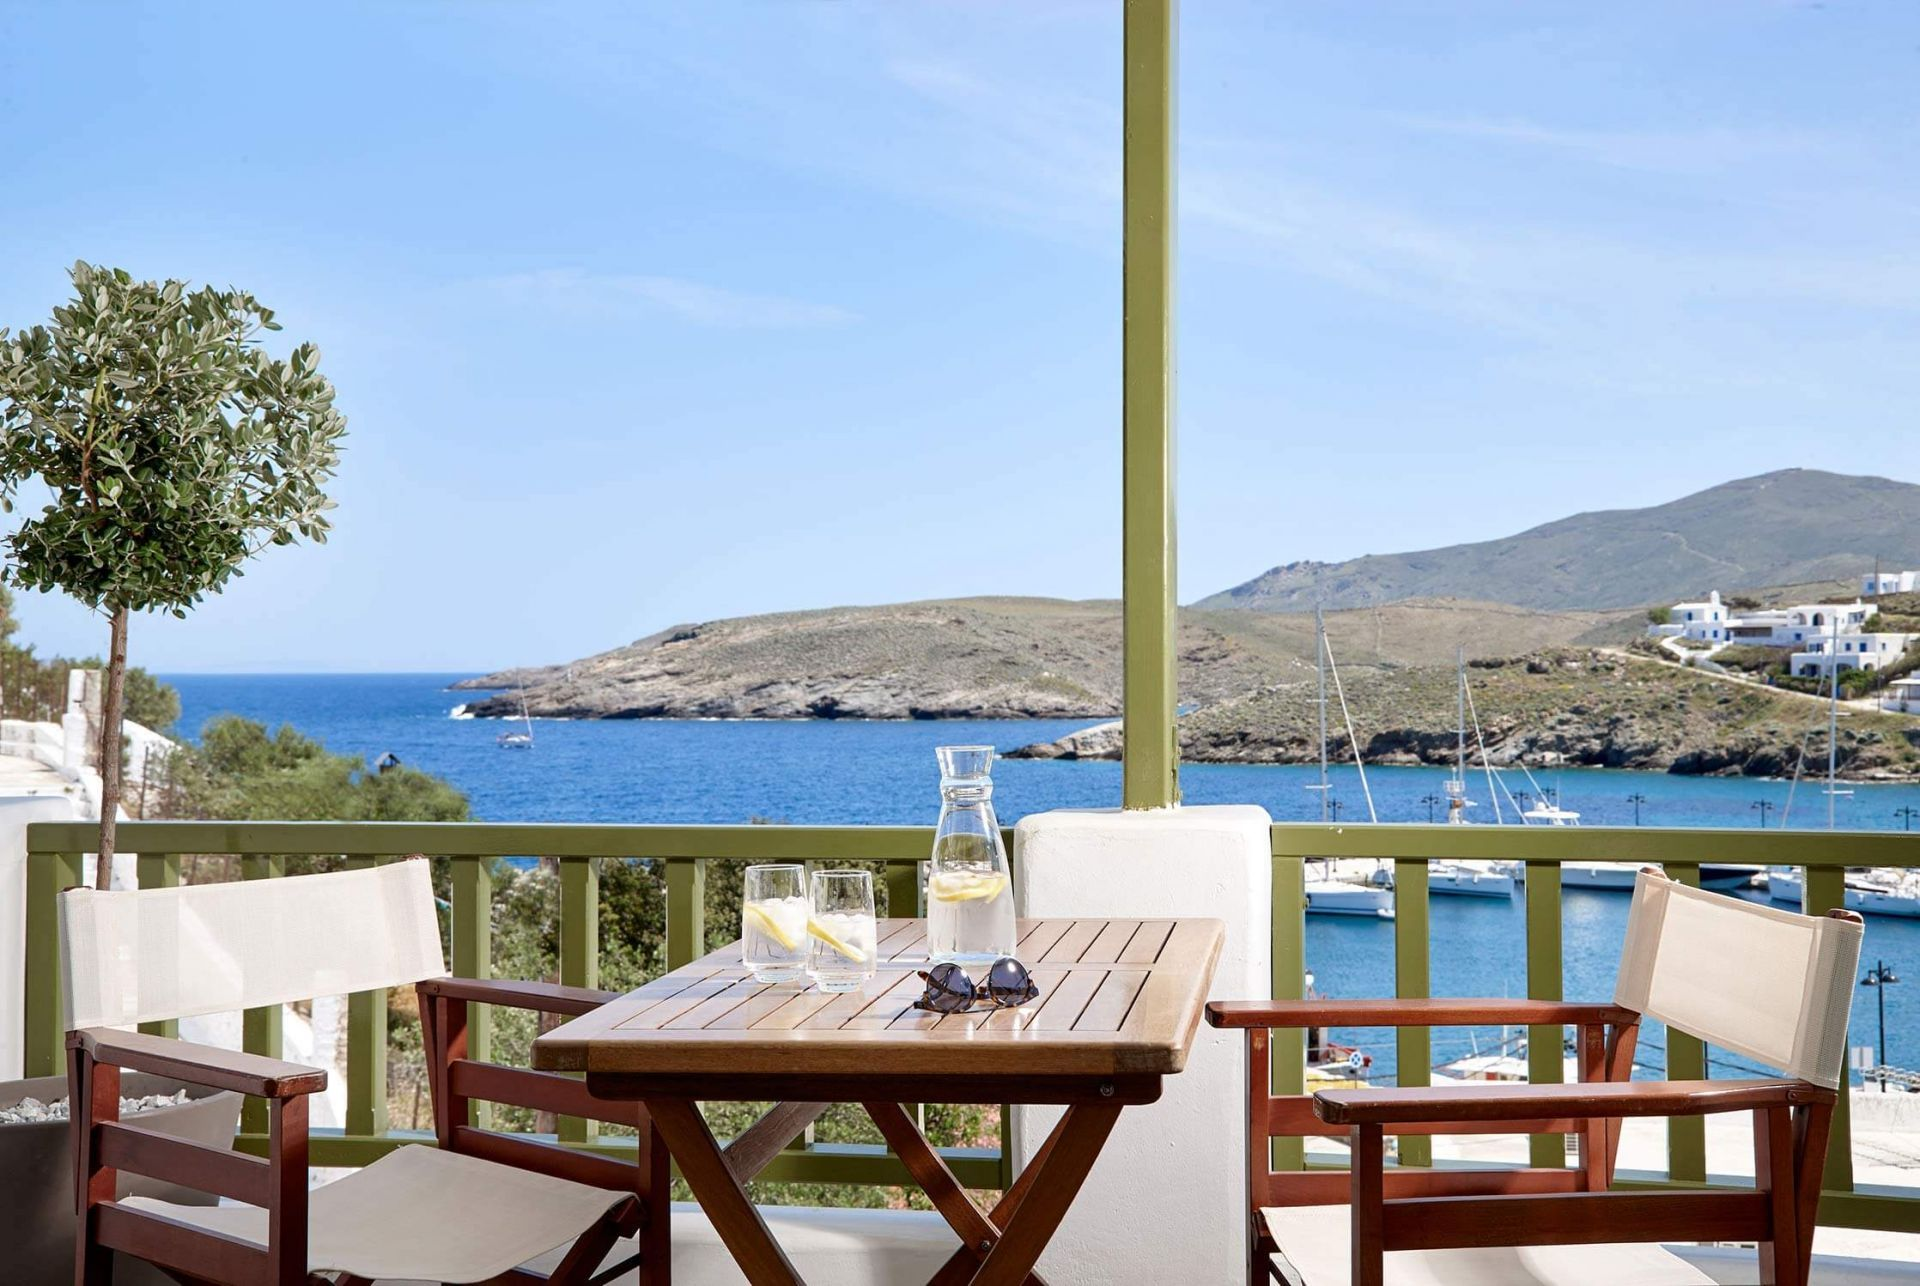 Accommodation and hotels in Kythnos